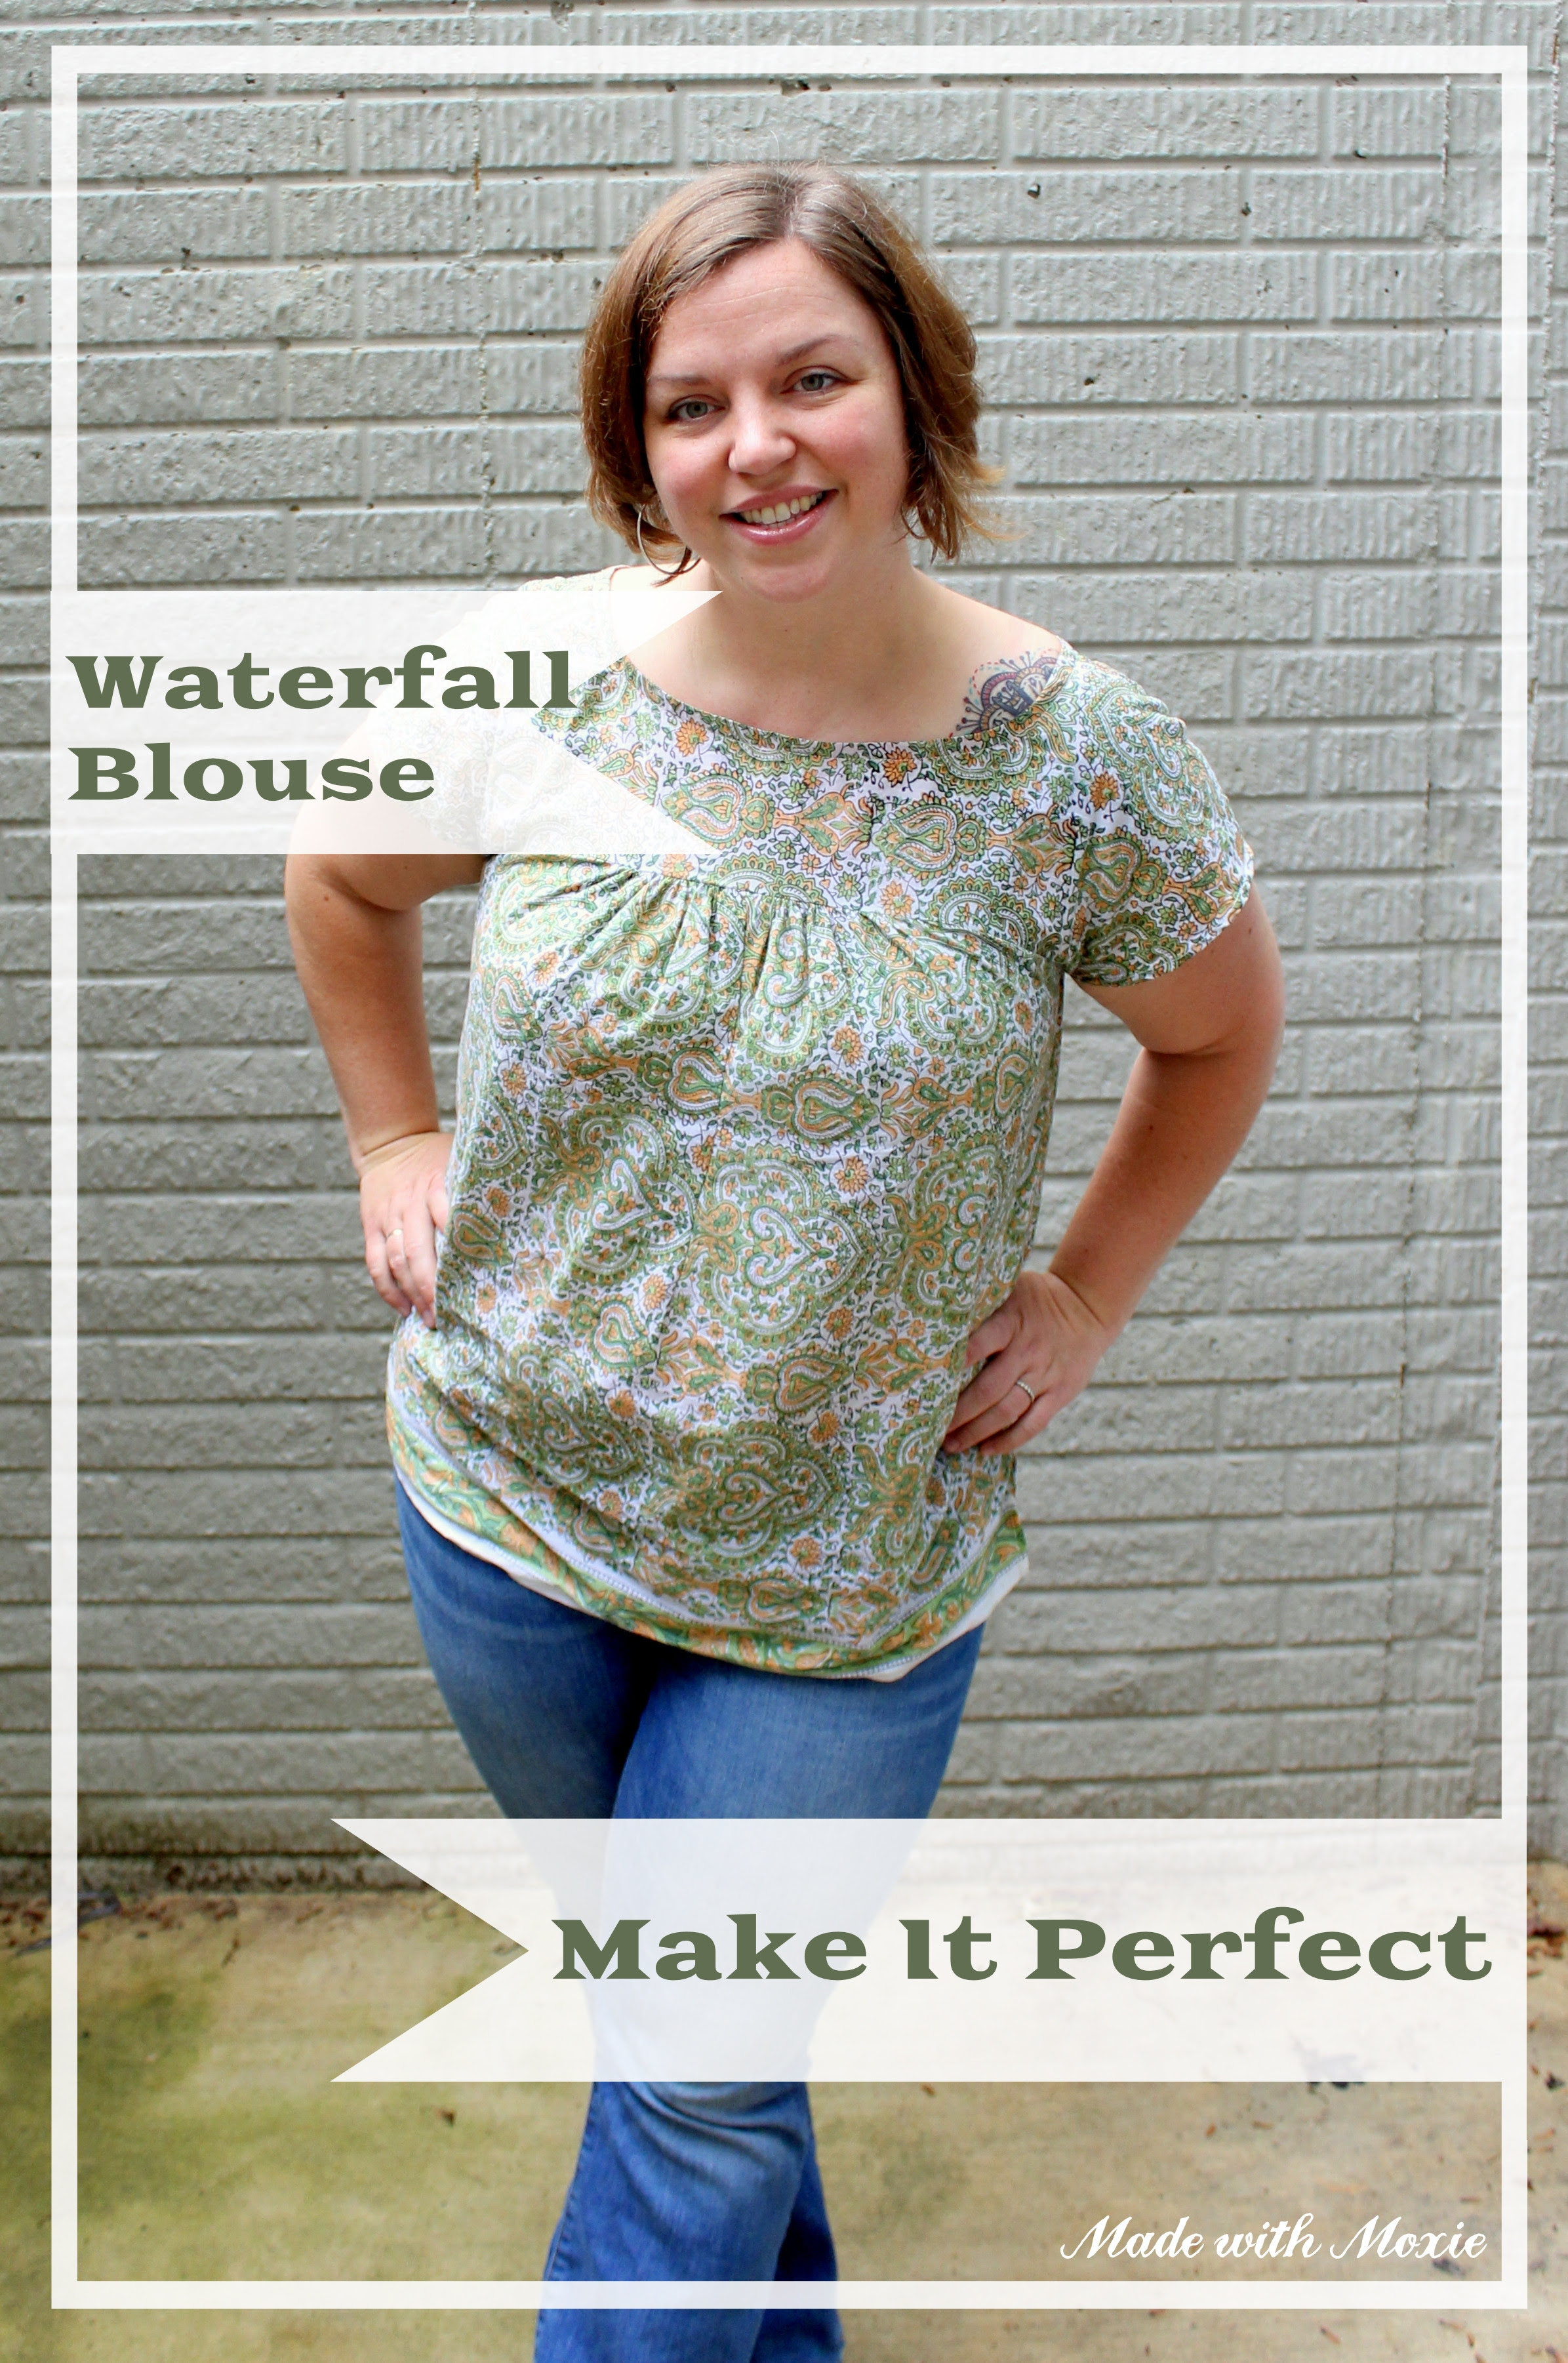 Comfortable, effortless hippie chic woven cotton blouse looks cute with jeans and is a quick, satisfactory sewing project.